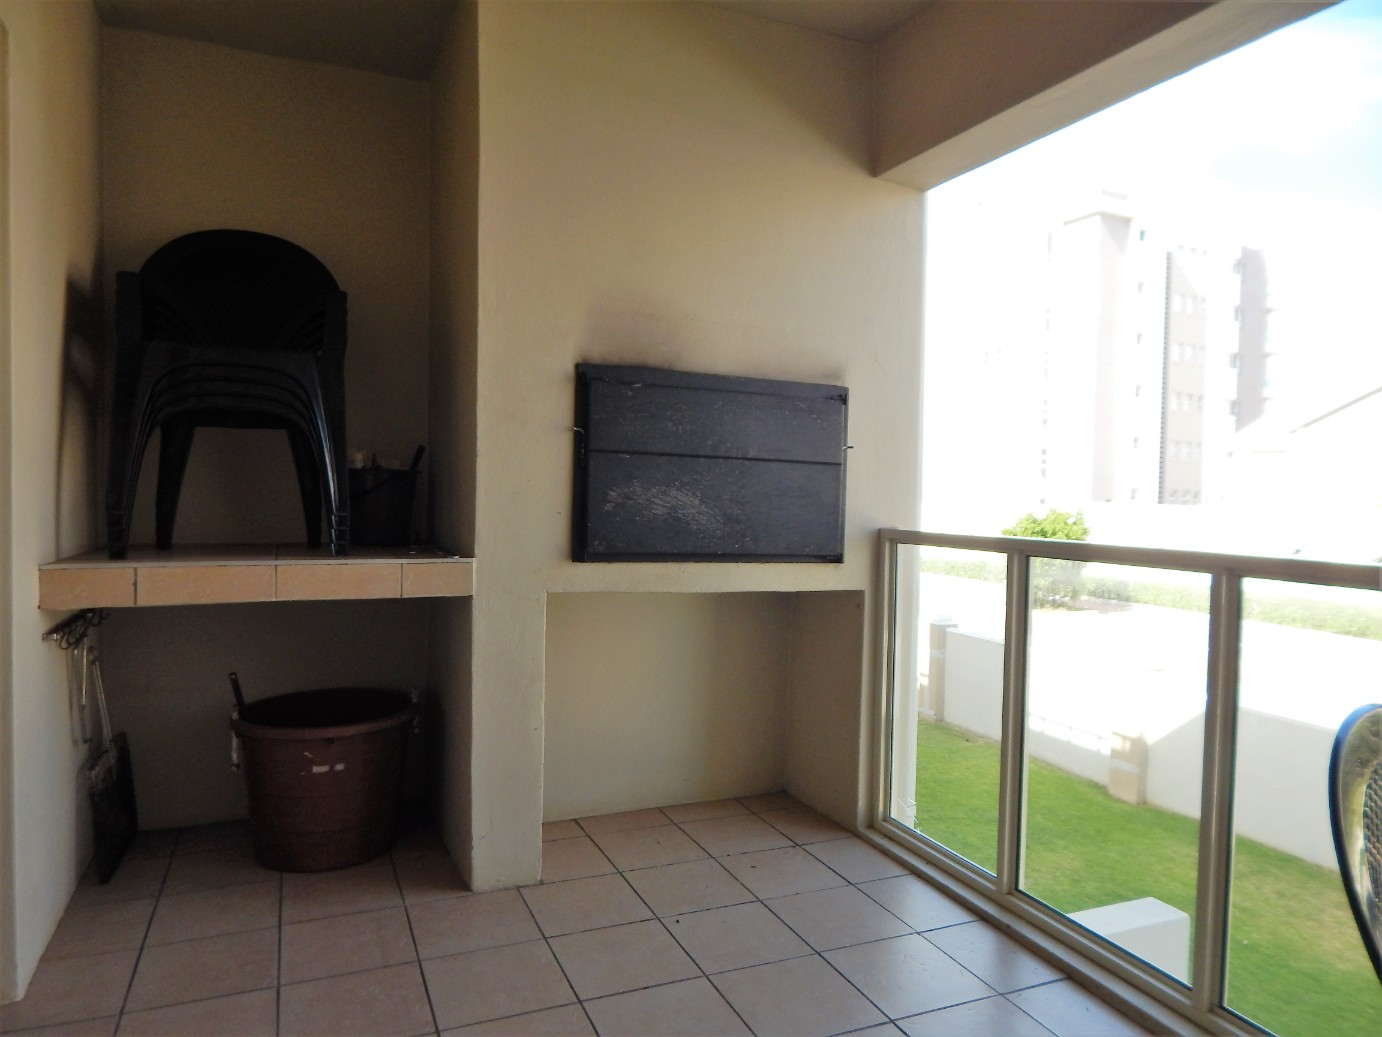 3 Bedroom Apartment for sale in Diaz Beach ENT0080239 : photo#18